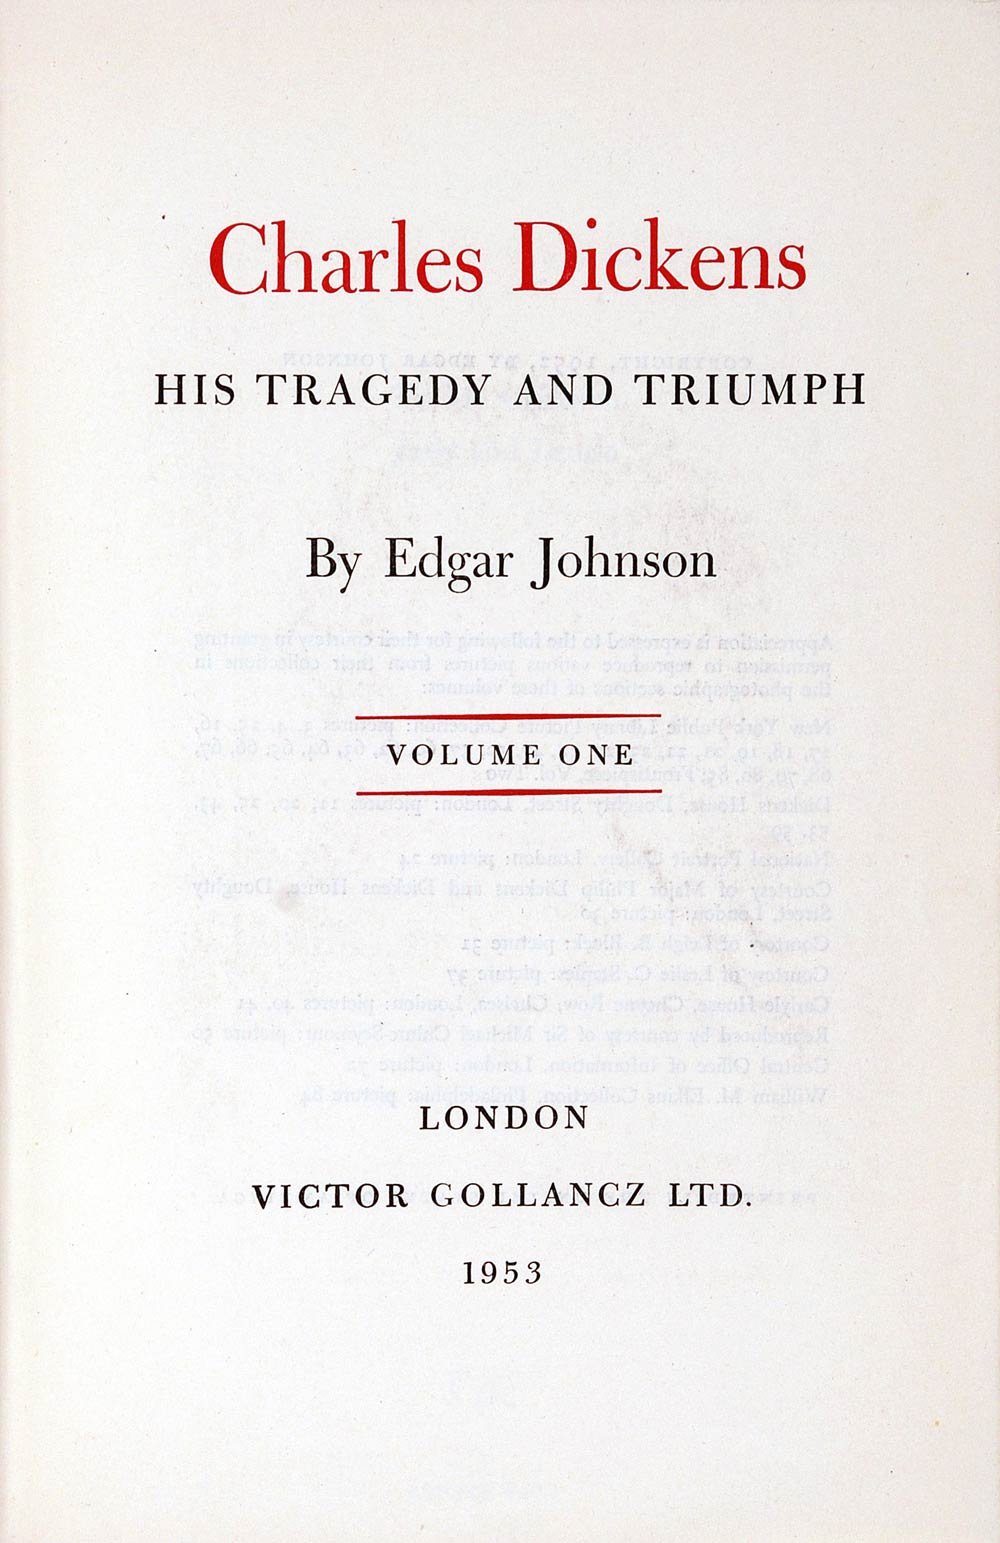 Edgar Johnson. Charles Dickens: His Tragedy and Triumph. 2 vols. London: Victor Gollancz Ltd., 1953